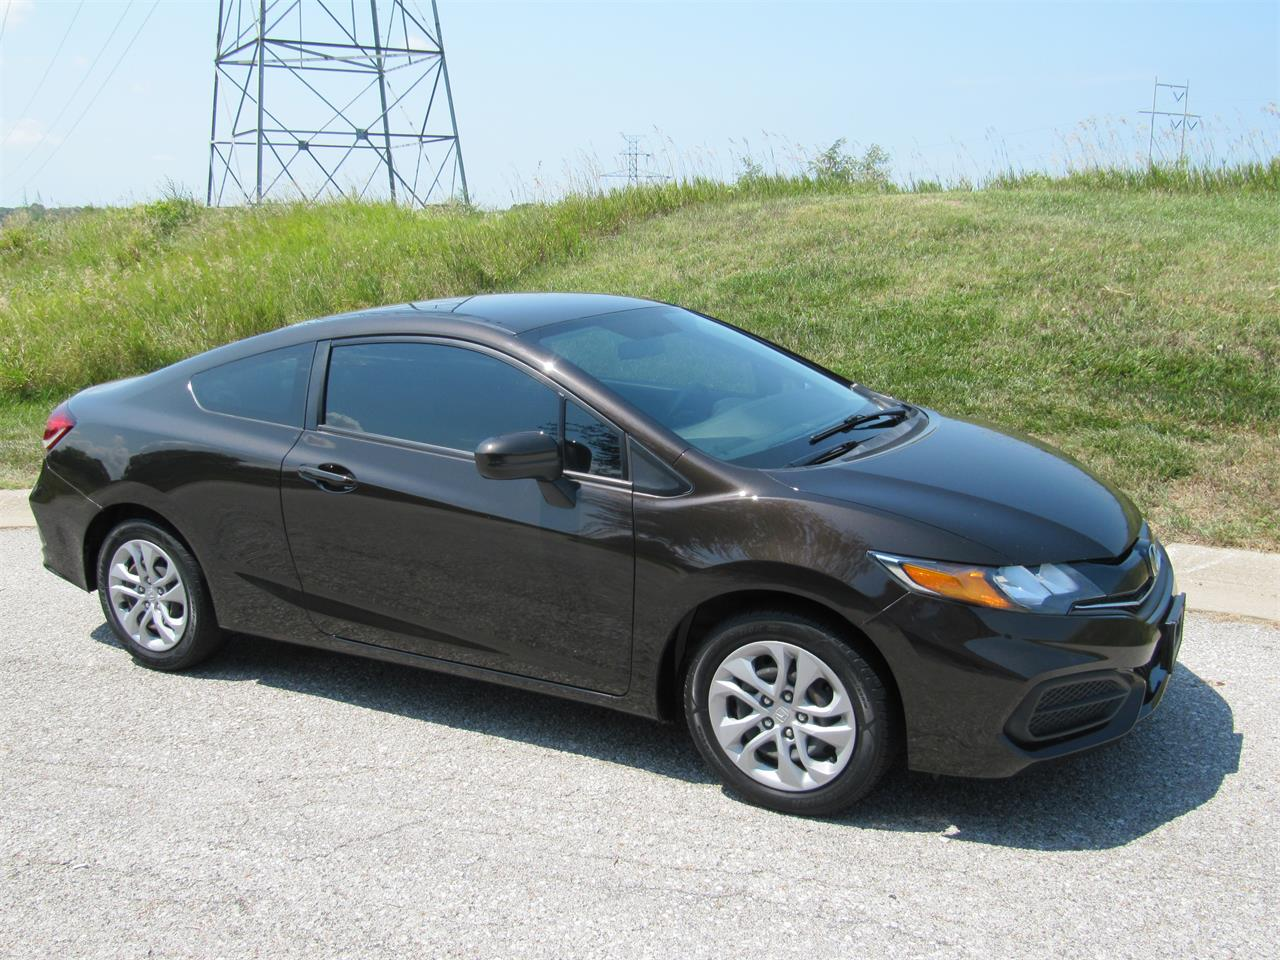 Large Picture of '14 Civic located in Nebraska - QPBK